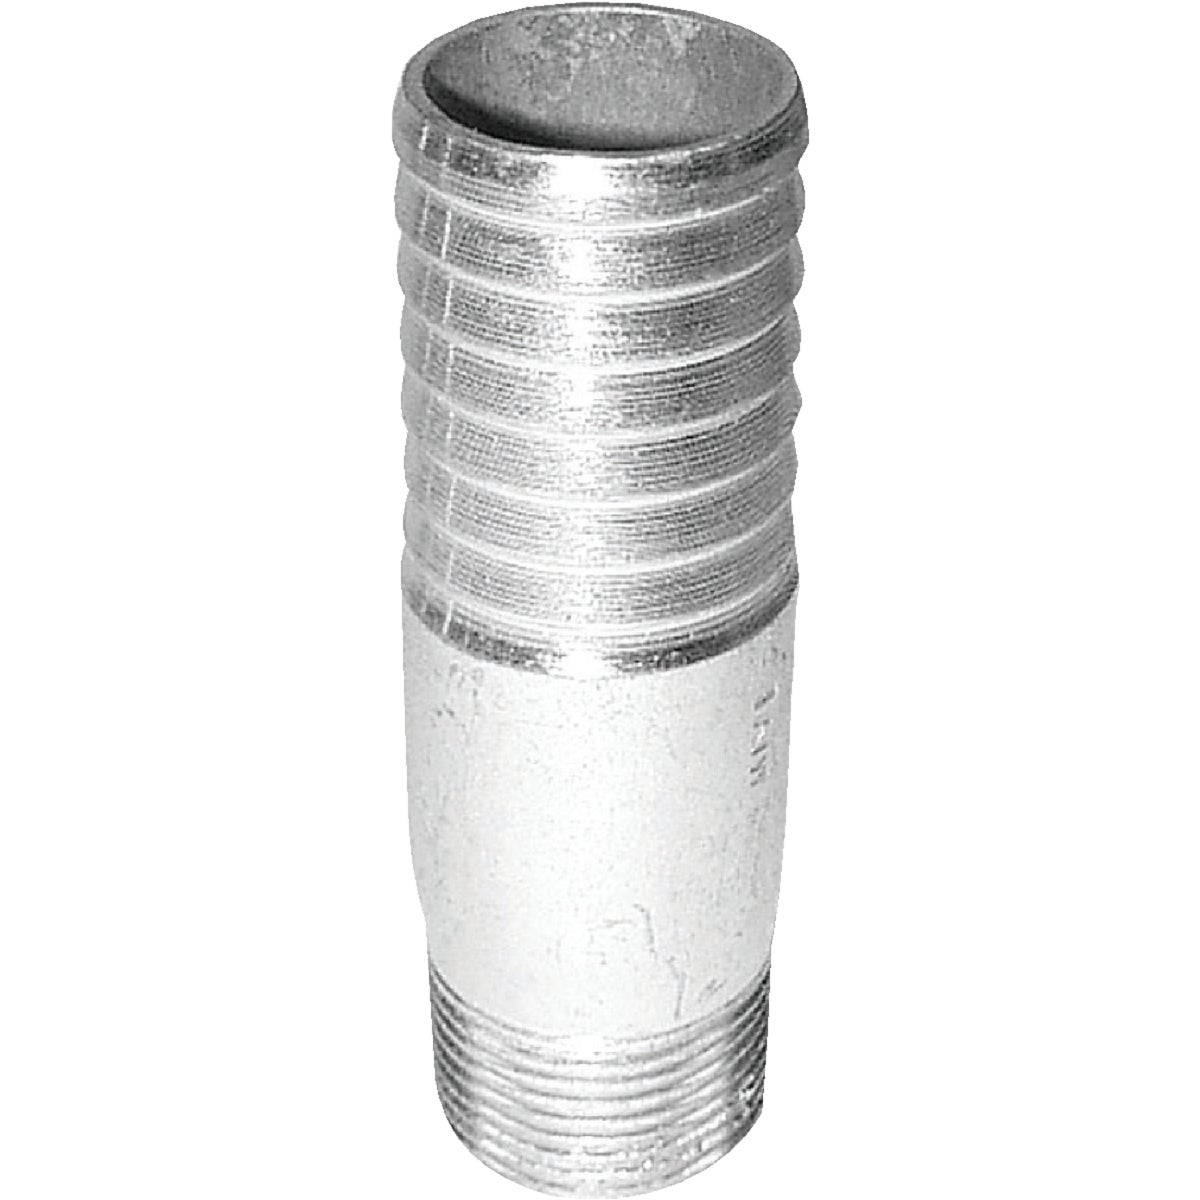 "1X3/4"" THREADED ADAPTER"